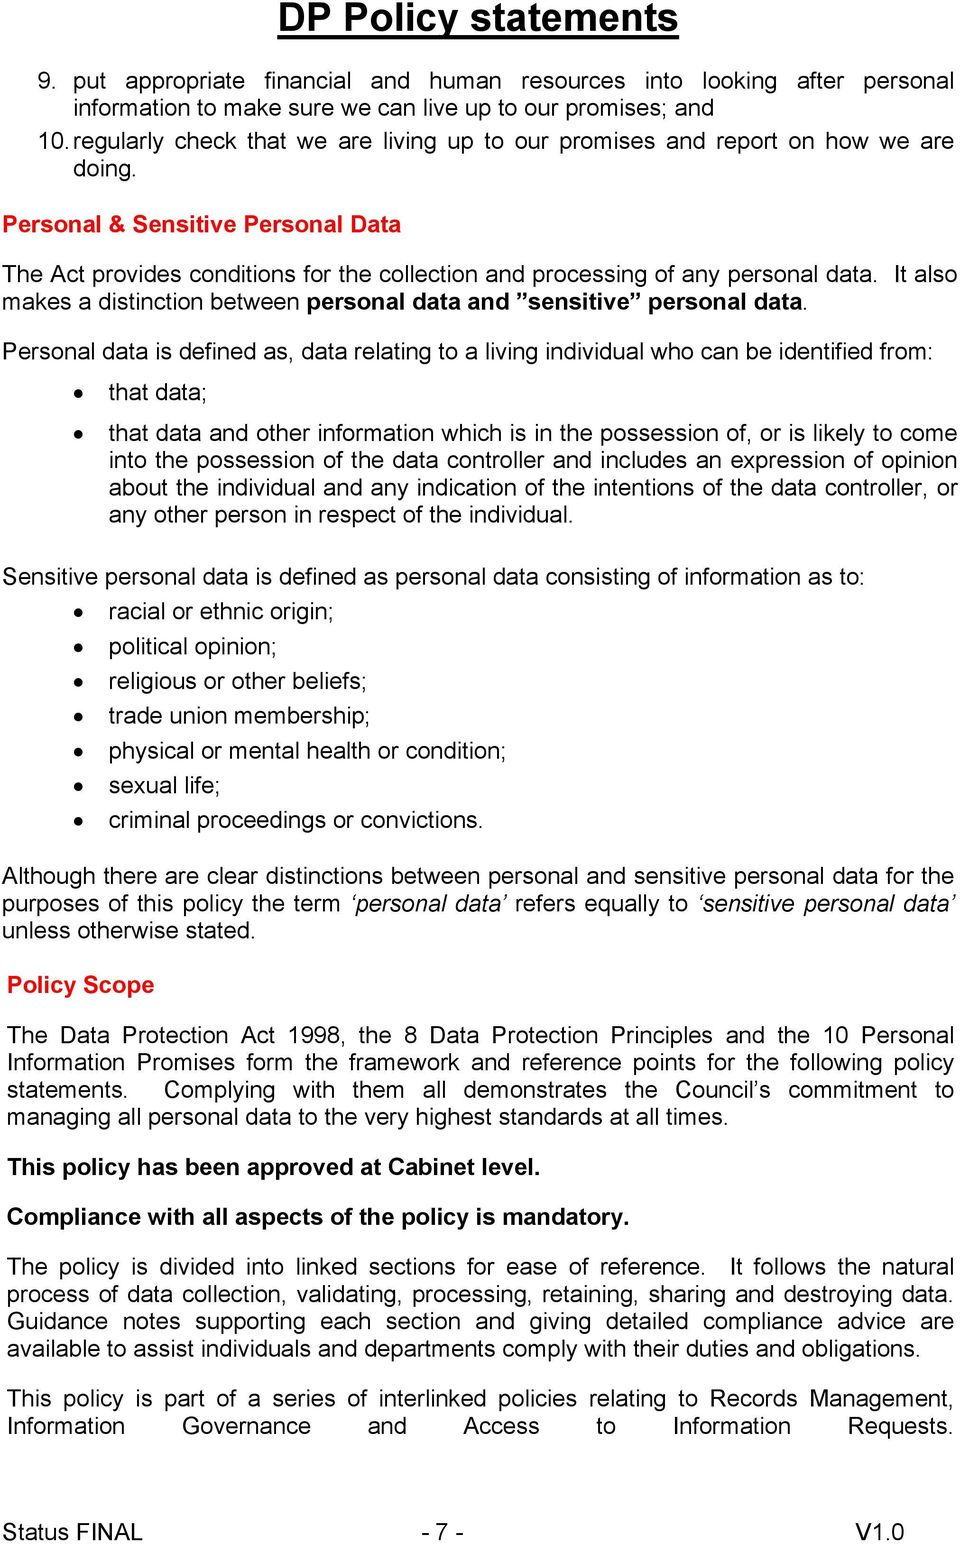 Personal & Sensitive Personal Data The Act provides conditions for the collection and processing of any personal data. It also makes a distinction between personal data and sensitive personal data.